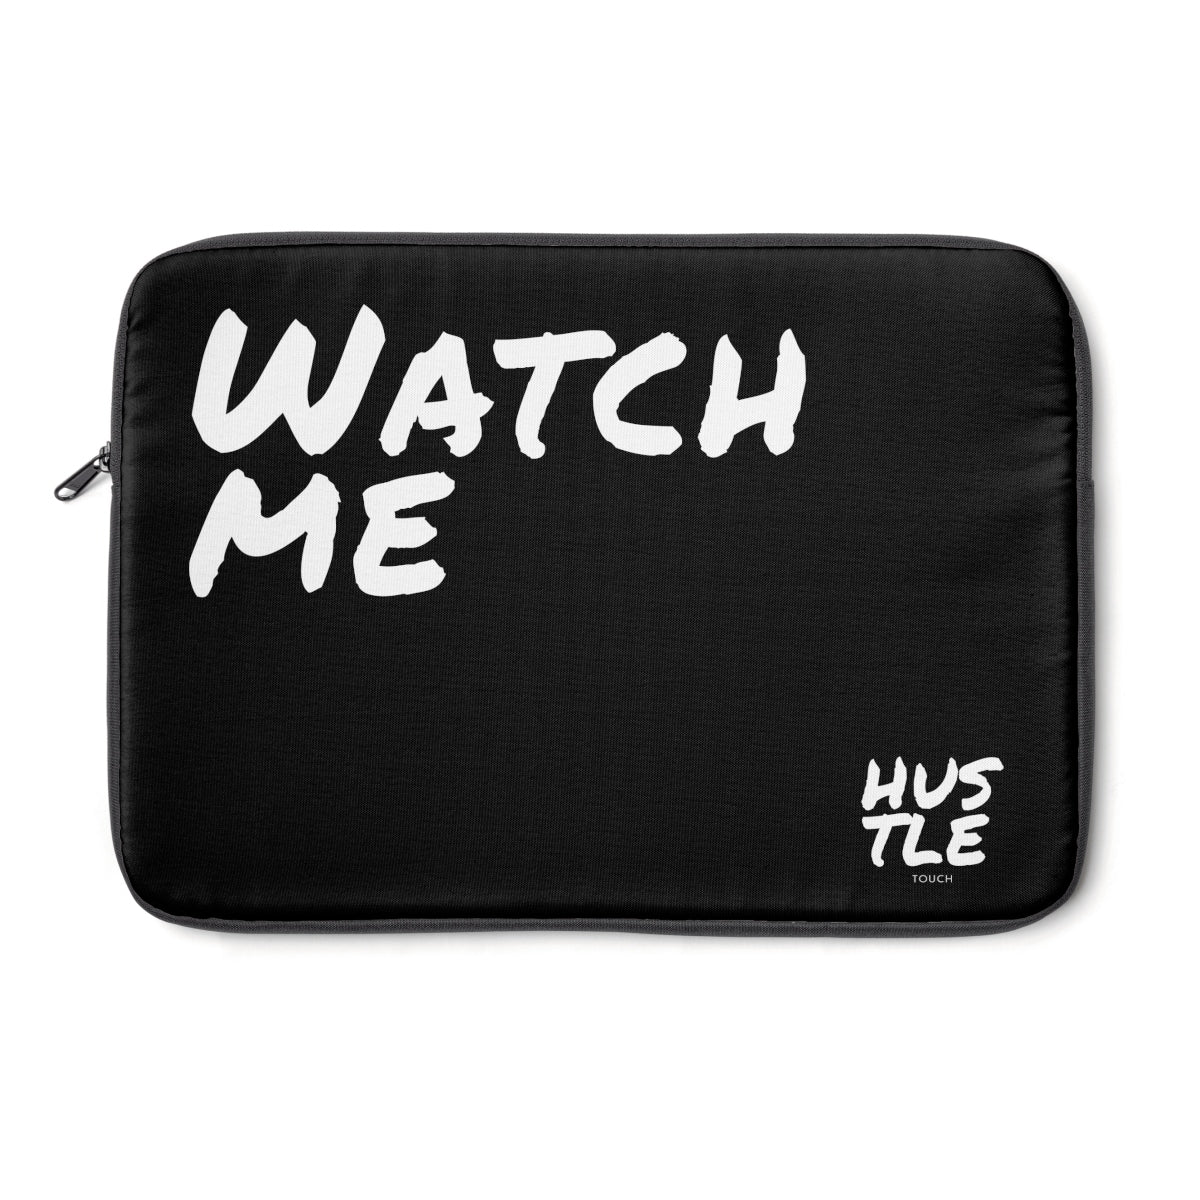 Black Laptop Sleeve 003 - Hustle Touch